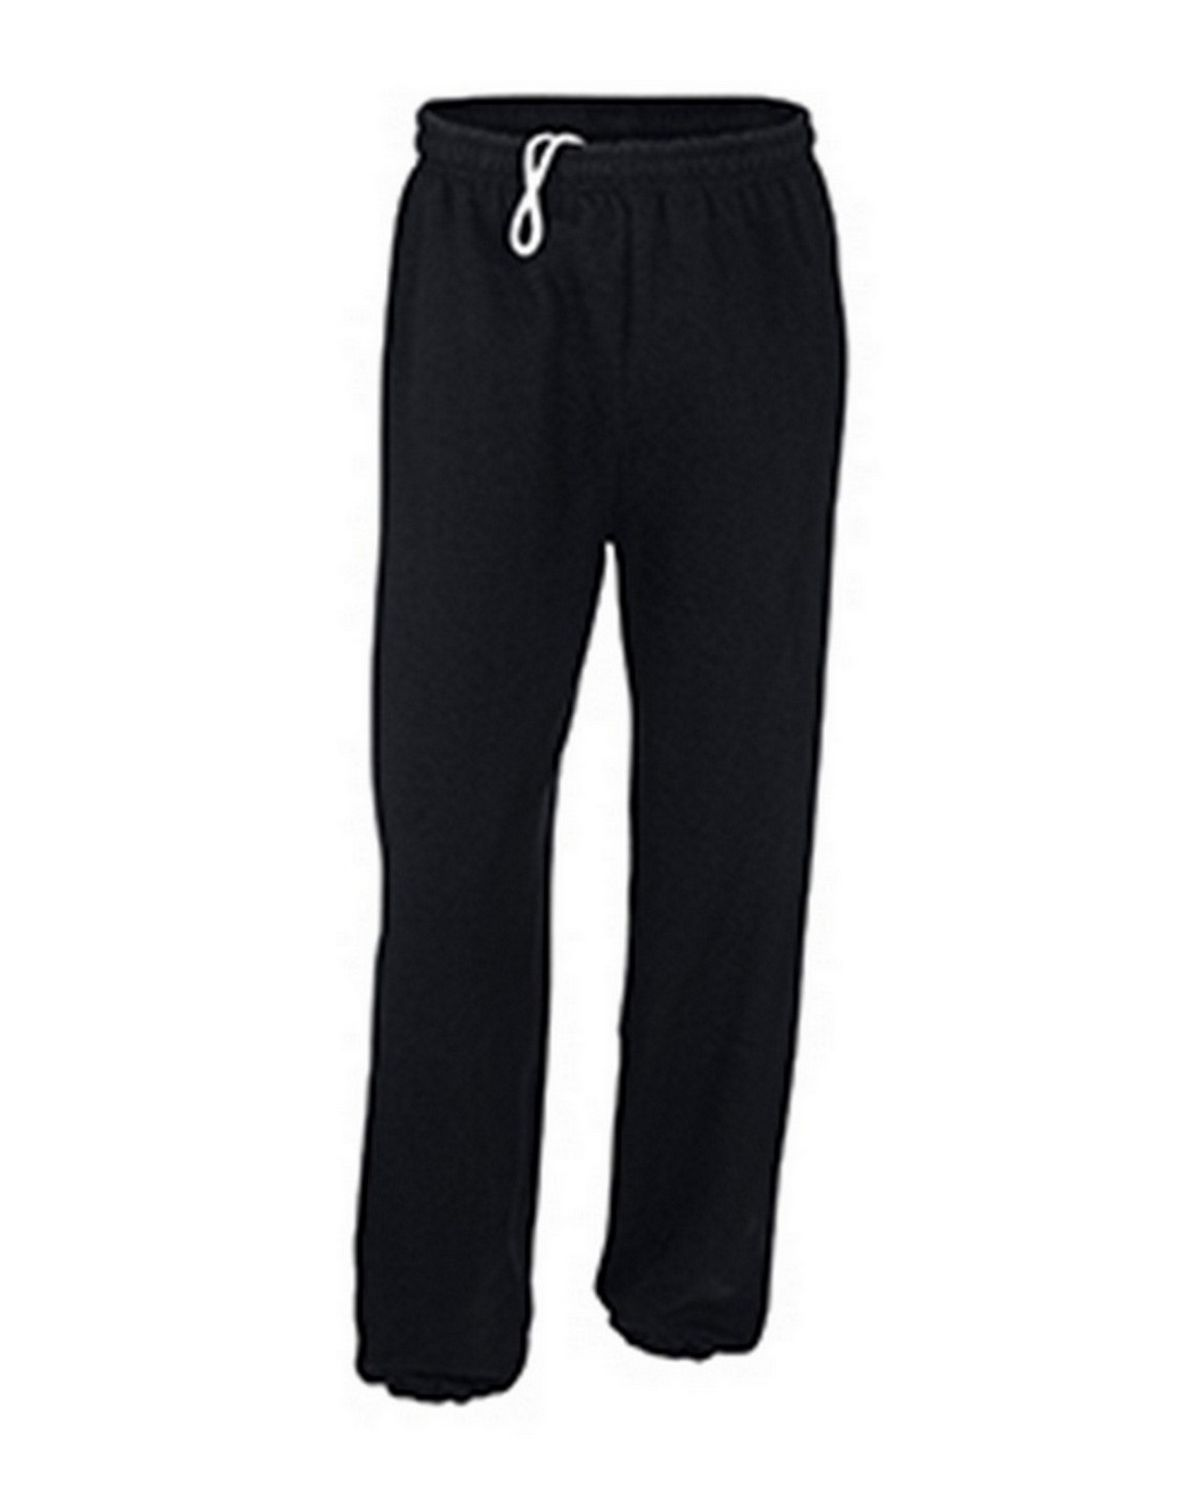 Gildan G18200B Heavy Blend Youth Sweatpants - Black - XL G18200B